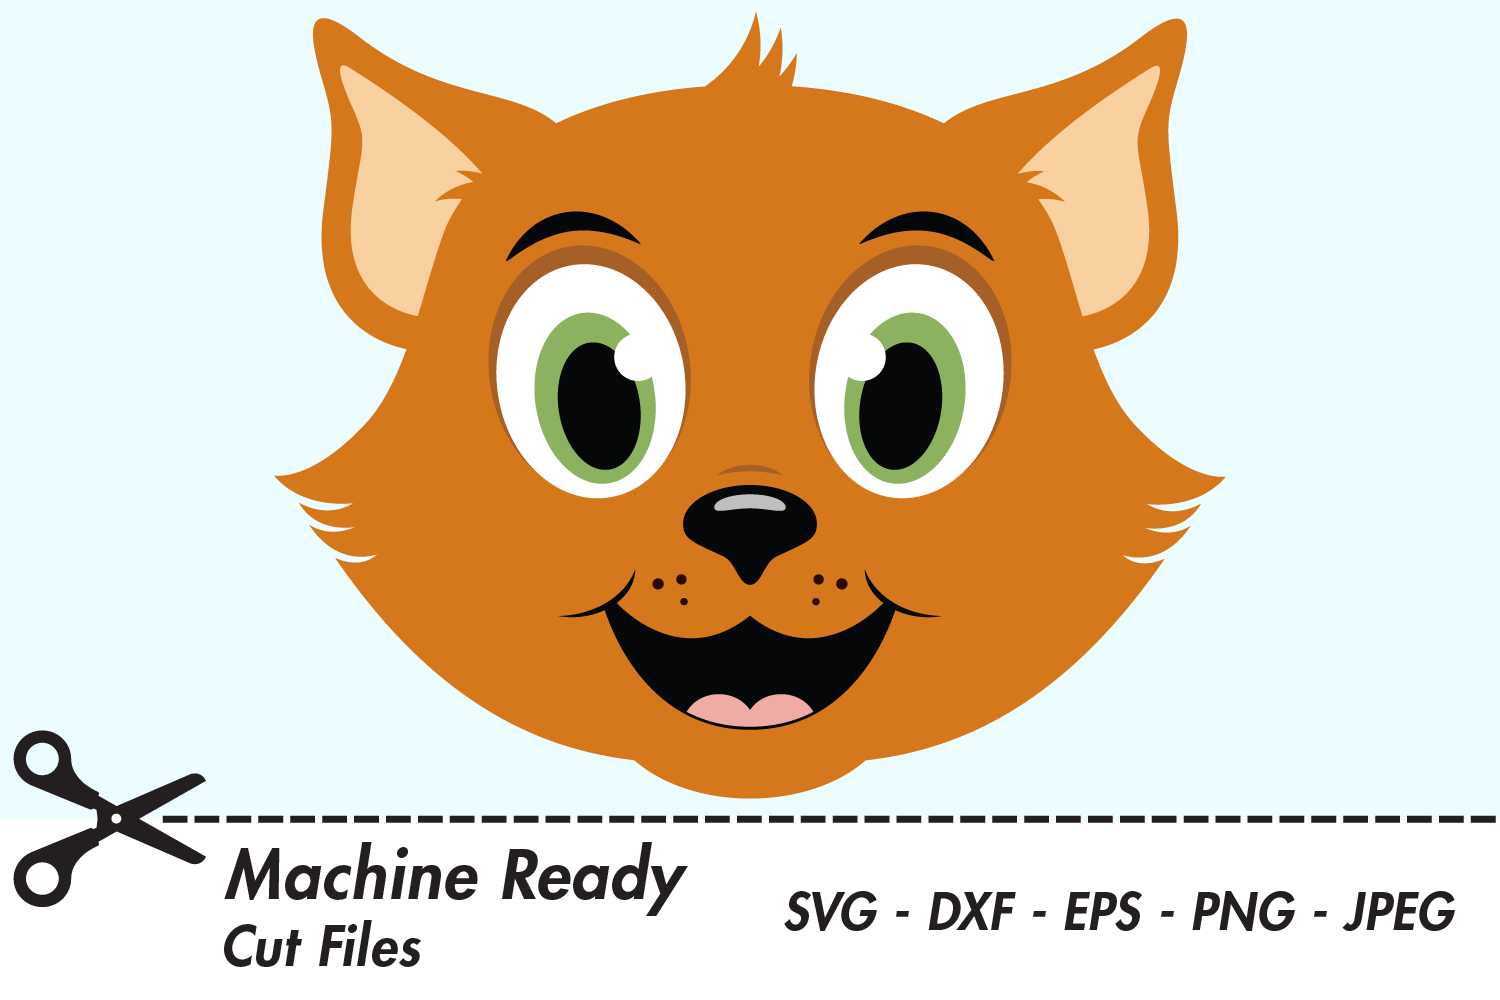 Download Free Cute Boy Cat Face Graphic By Captaincreative Creative Fabrica for Cricut Explore, Silhouette and other cutting machines.